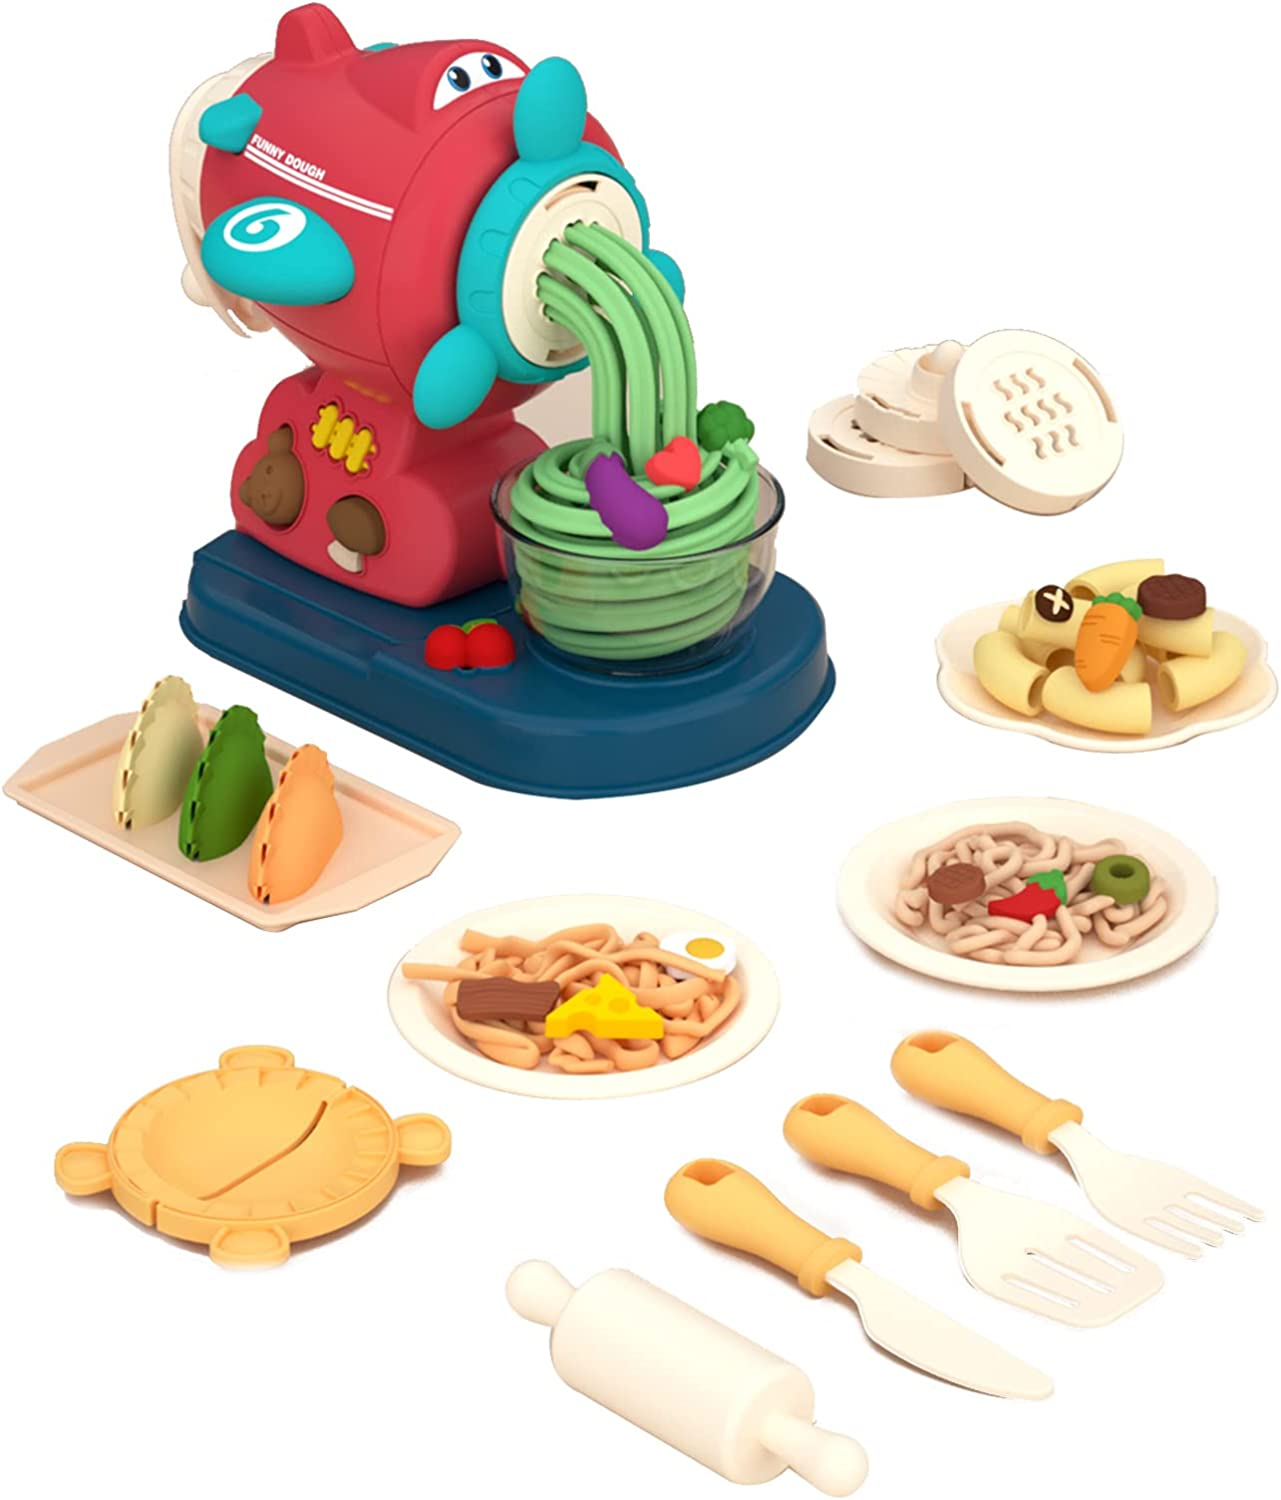 Noodle Machine Toy Shape Play Dough Kitchen Creation Noodle Party Play 3 Year Old Children Food Set Non-Toxic Compound Color